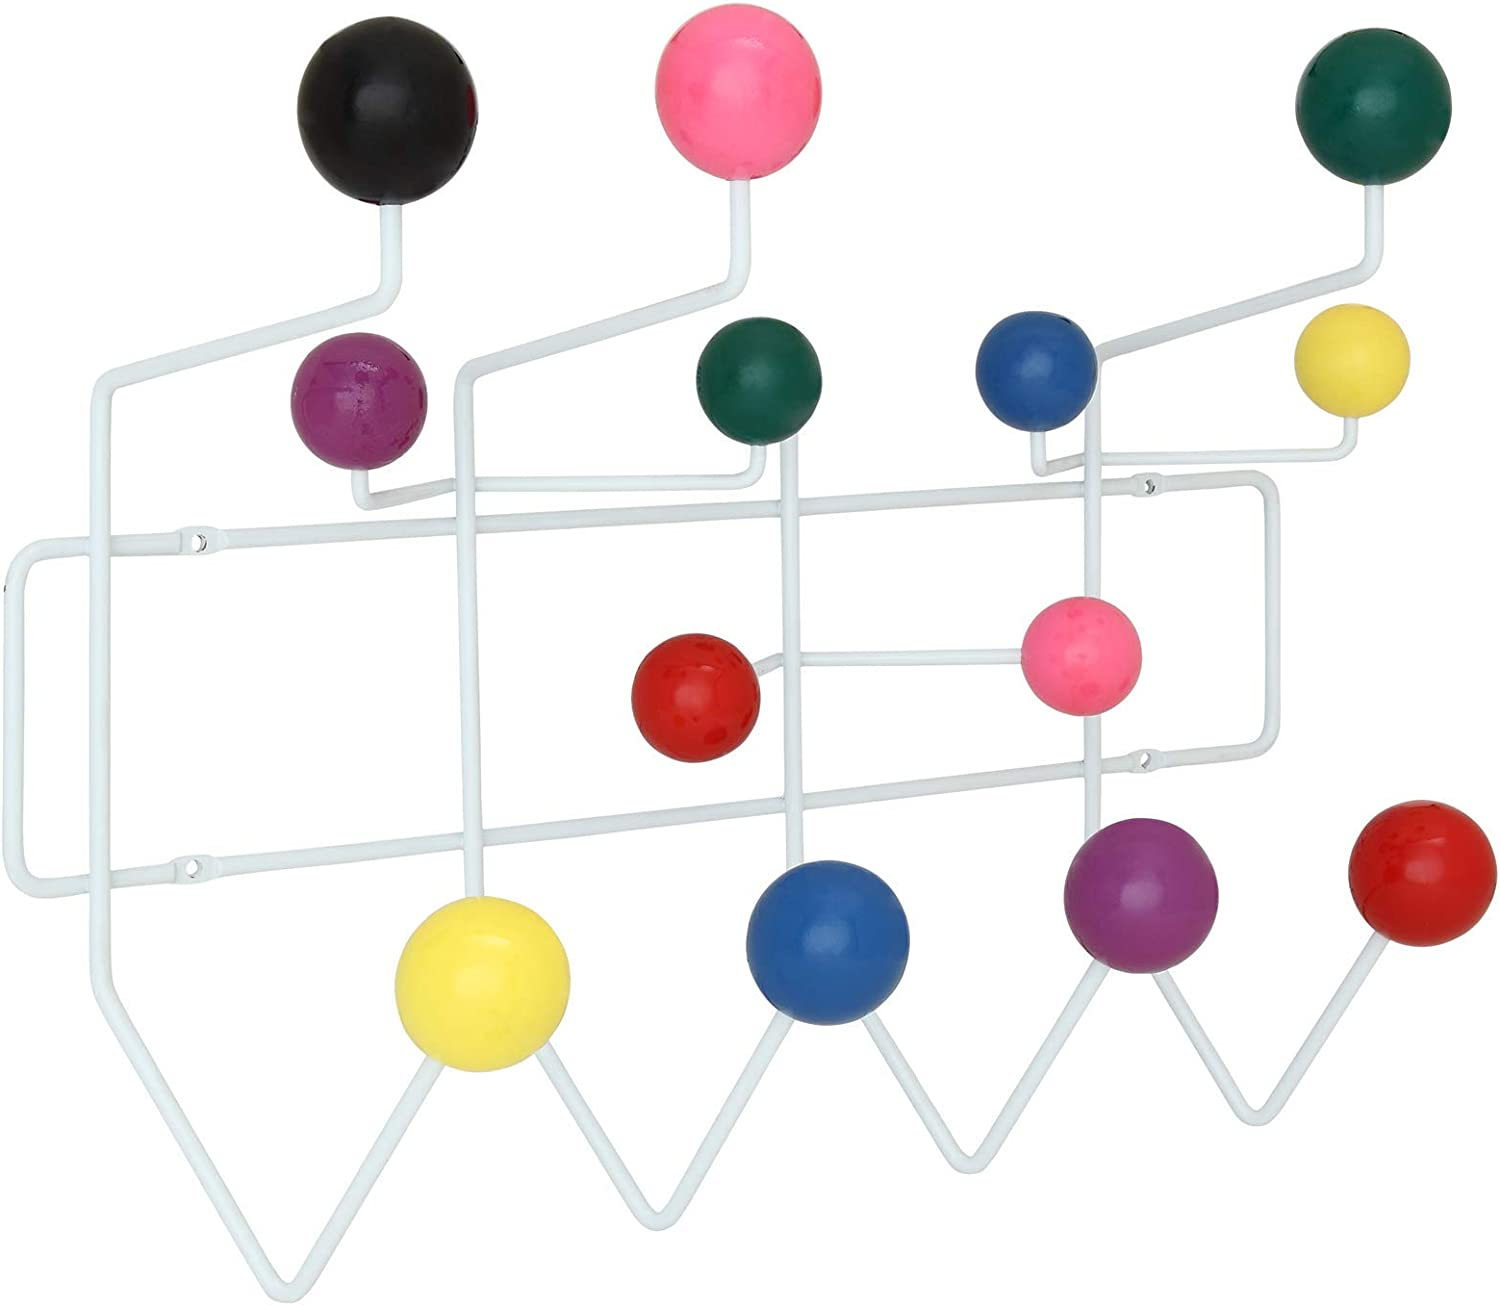 Modway Gumball Mid-Century Wall-Mounted Coat Rack in Multicolord